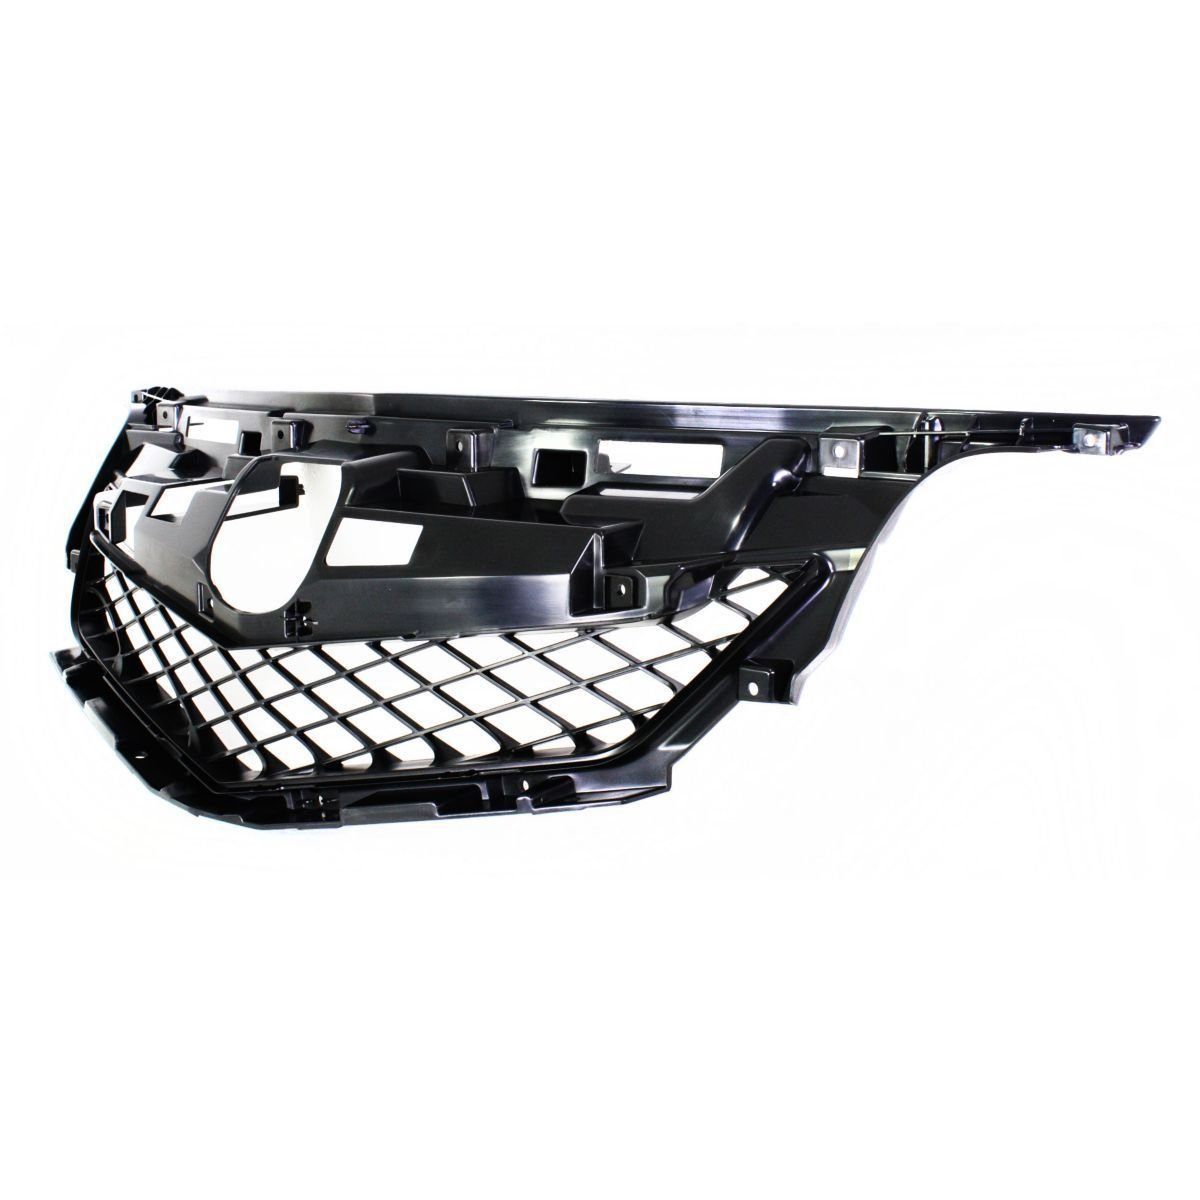 Diften 102-A3922-X01 - New Grille Reinforcement Grill Acura TL 2011 2010 2009 AC1202100C 75101TK4A01ZA